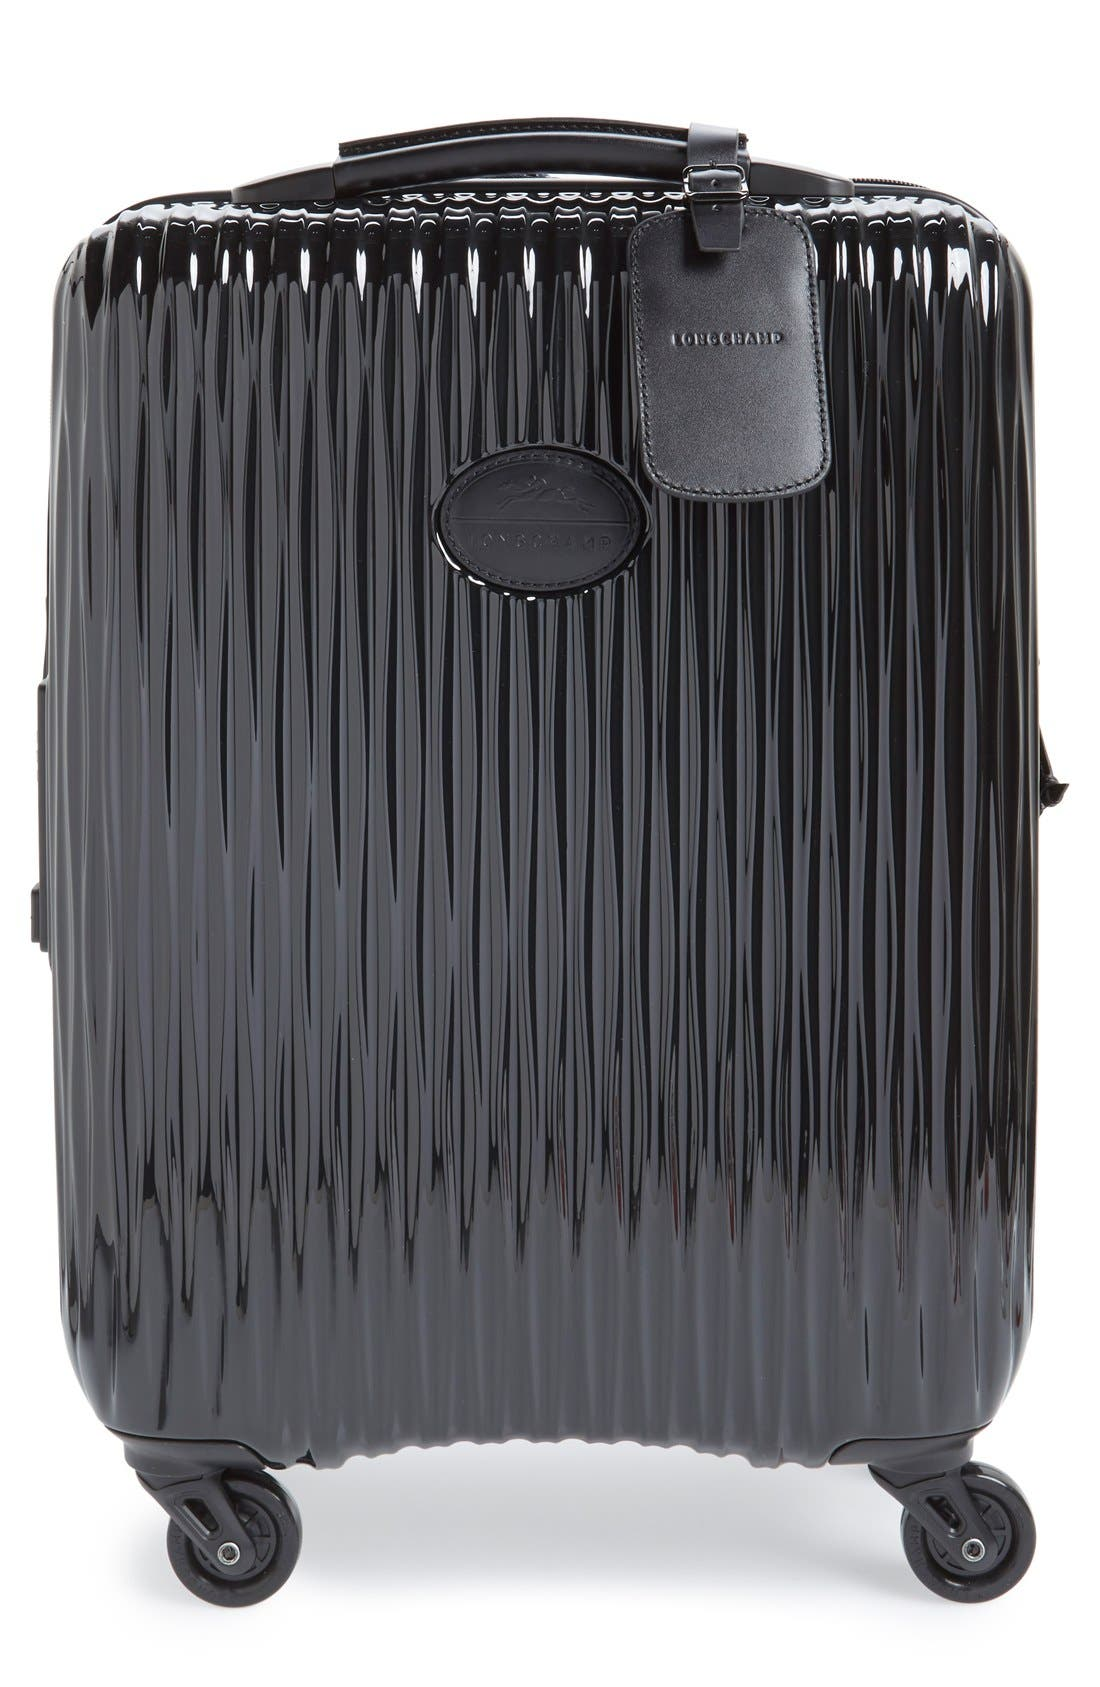 'Fairval' Four-Wheeled Hard Shell Suitcase,                             Main thumbnail 1, color,                             Black